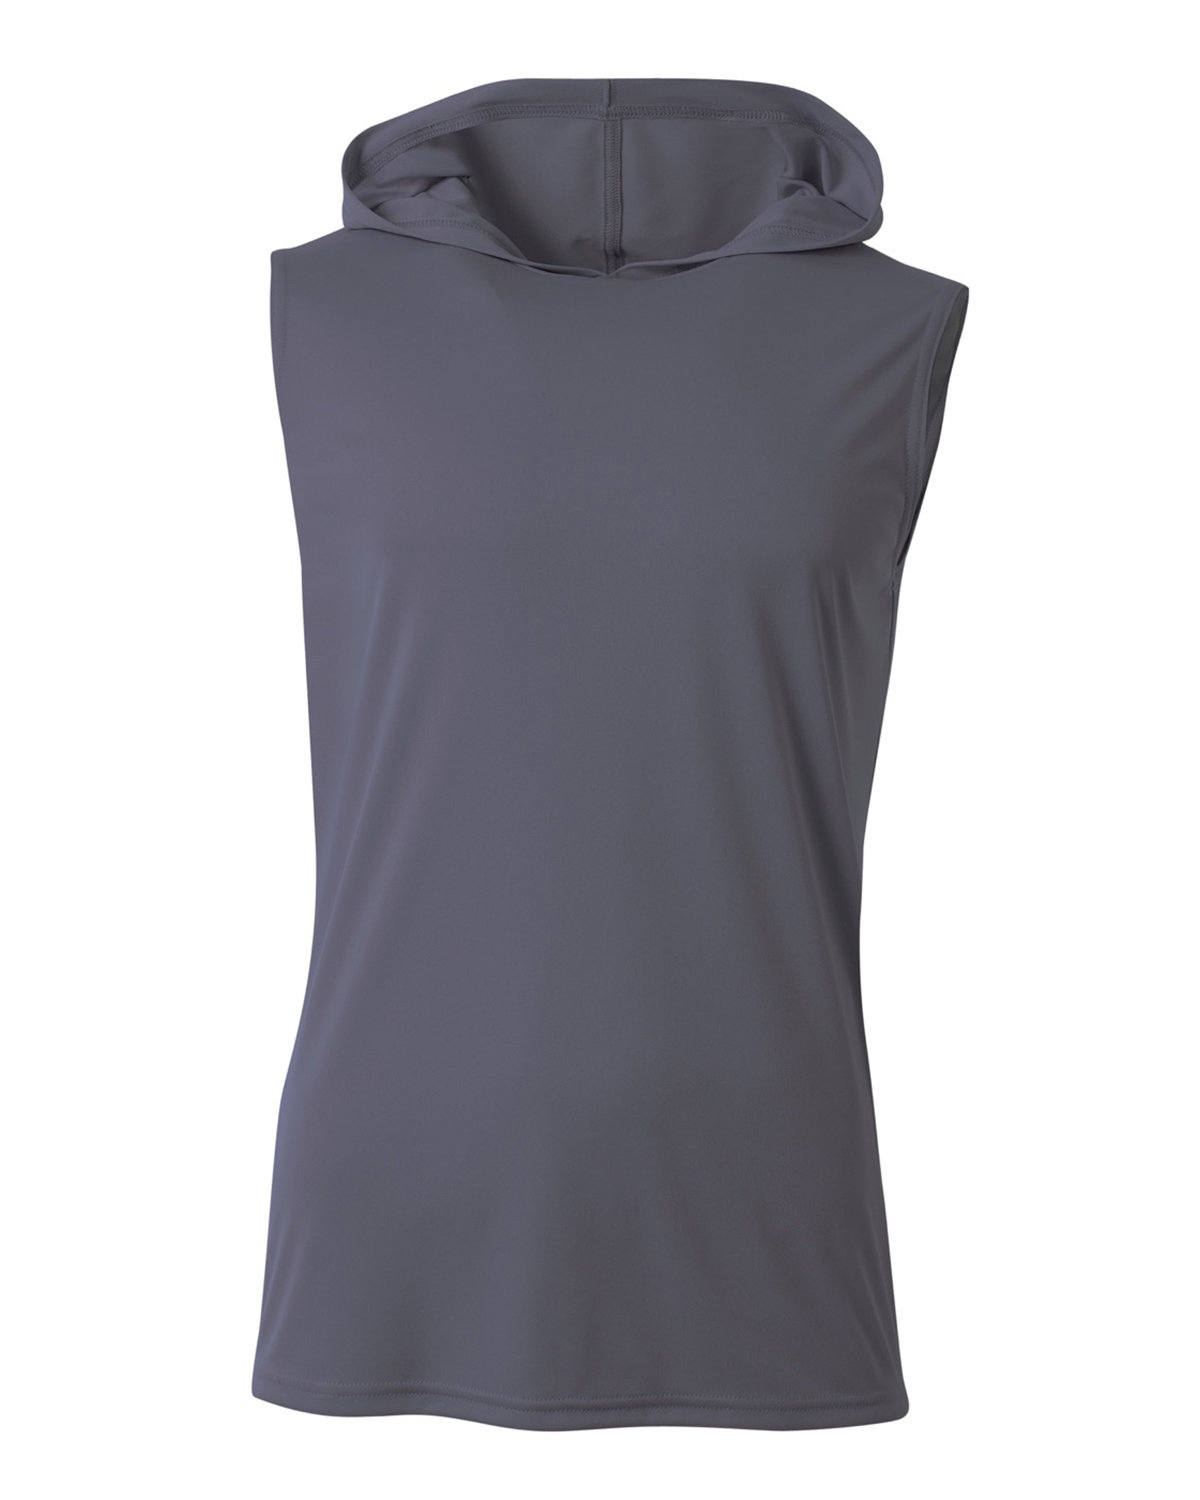 A4 Men's Cooling Performance Sleeveless Hooded T-shirt GRAPHITE